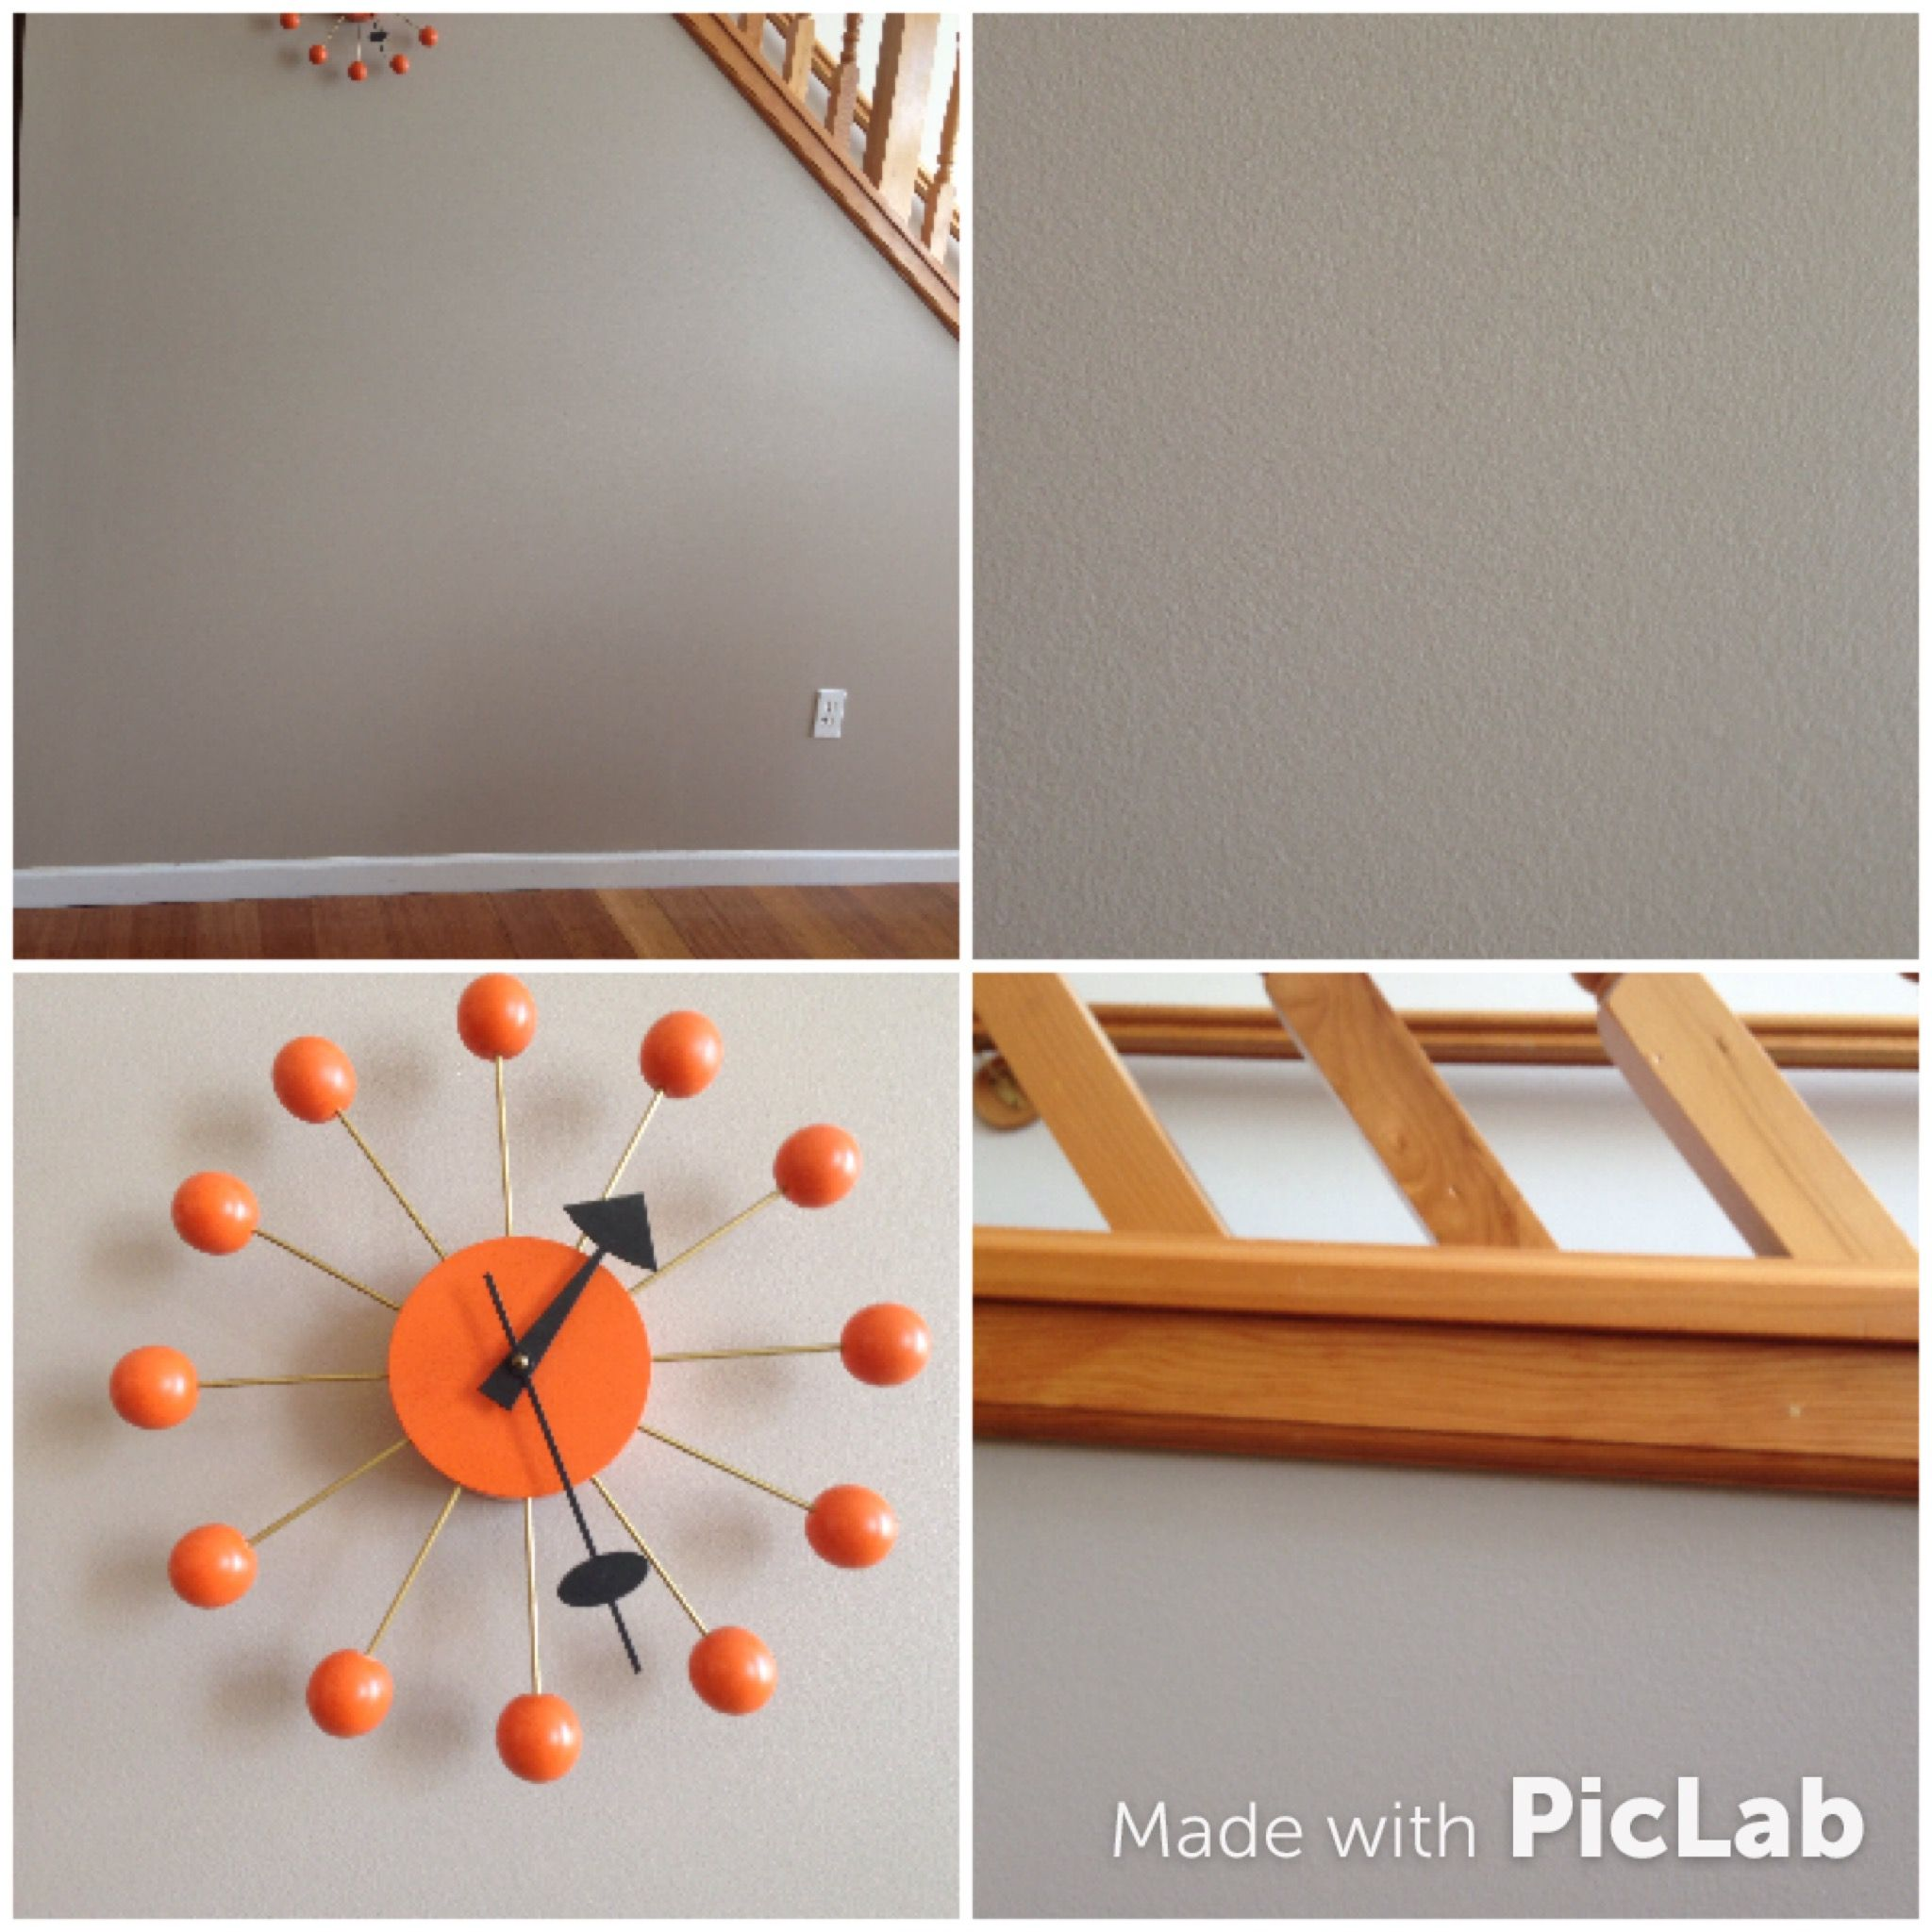 behr paint nightingale gray n200 3m purchased at home on home depot behr paint id=48809